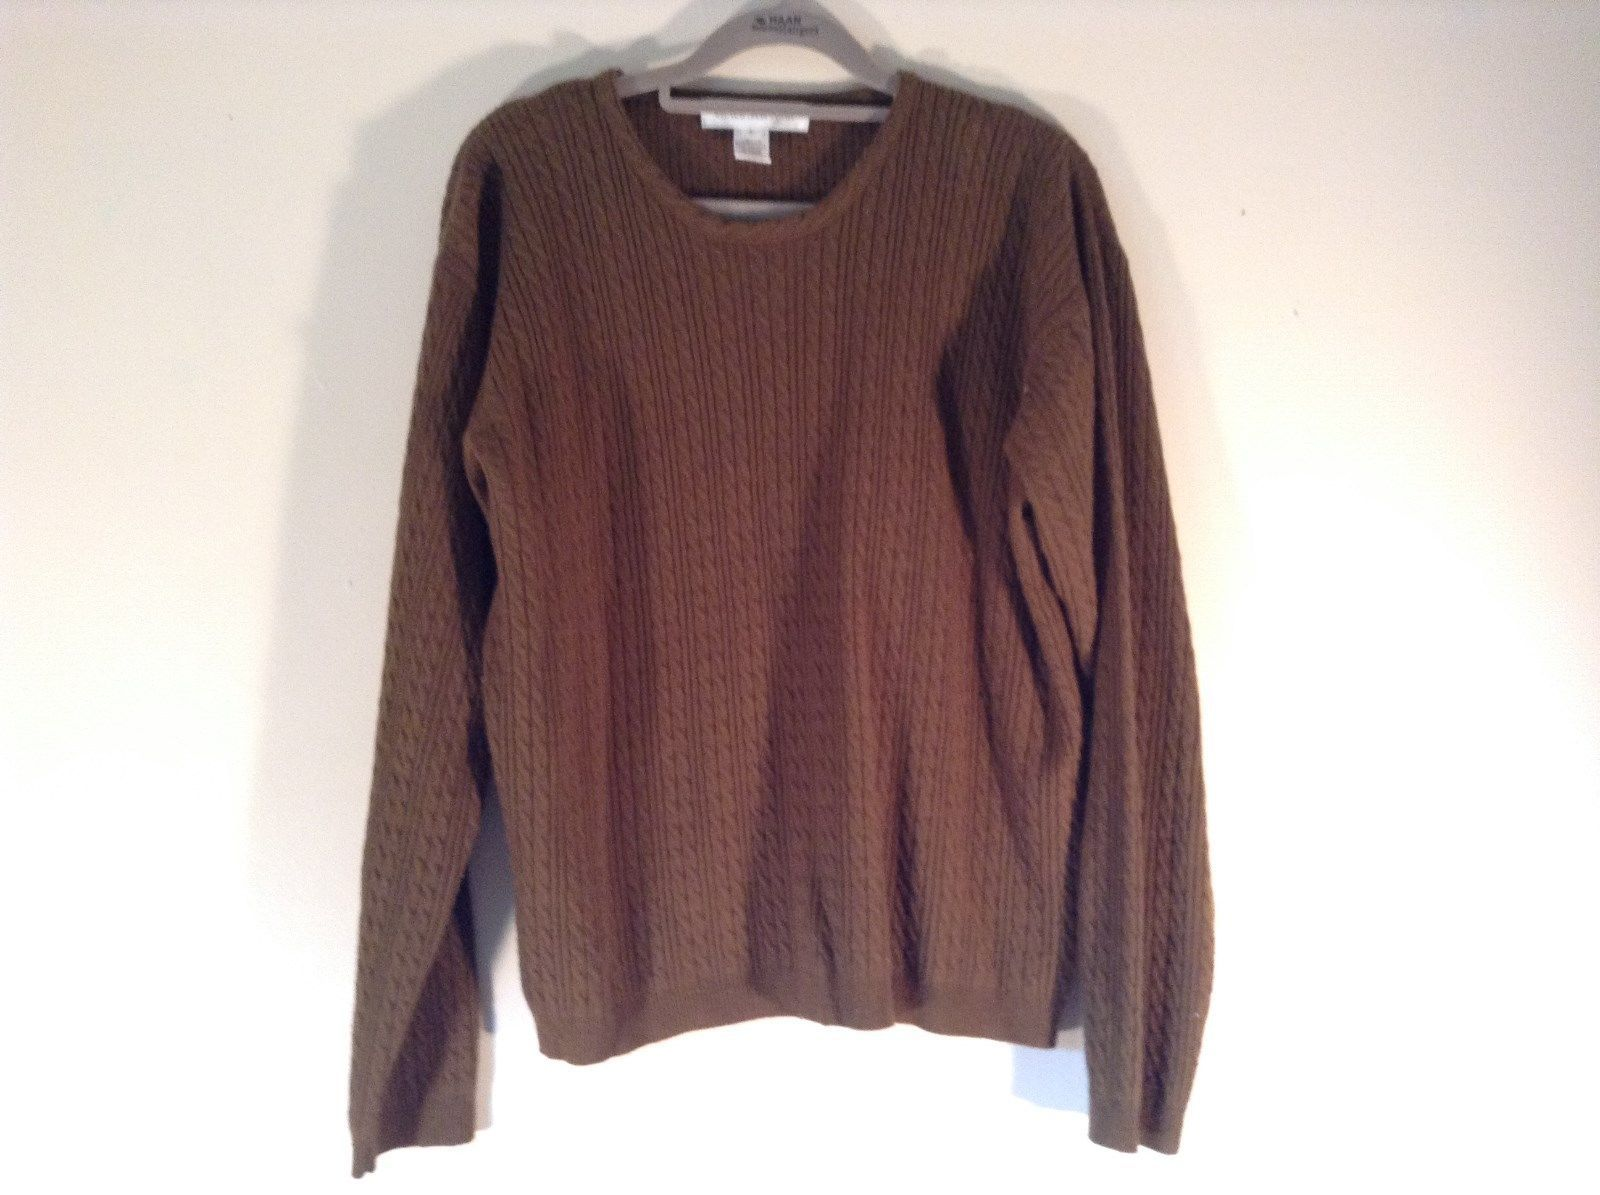 Jones New York Dark Olive Long Sleeve Sweater Size Large Lambs Wool Blend